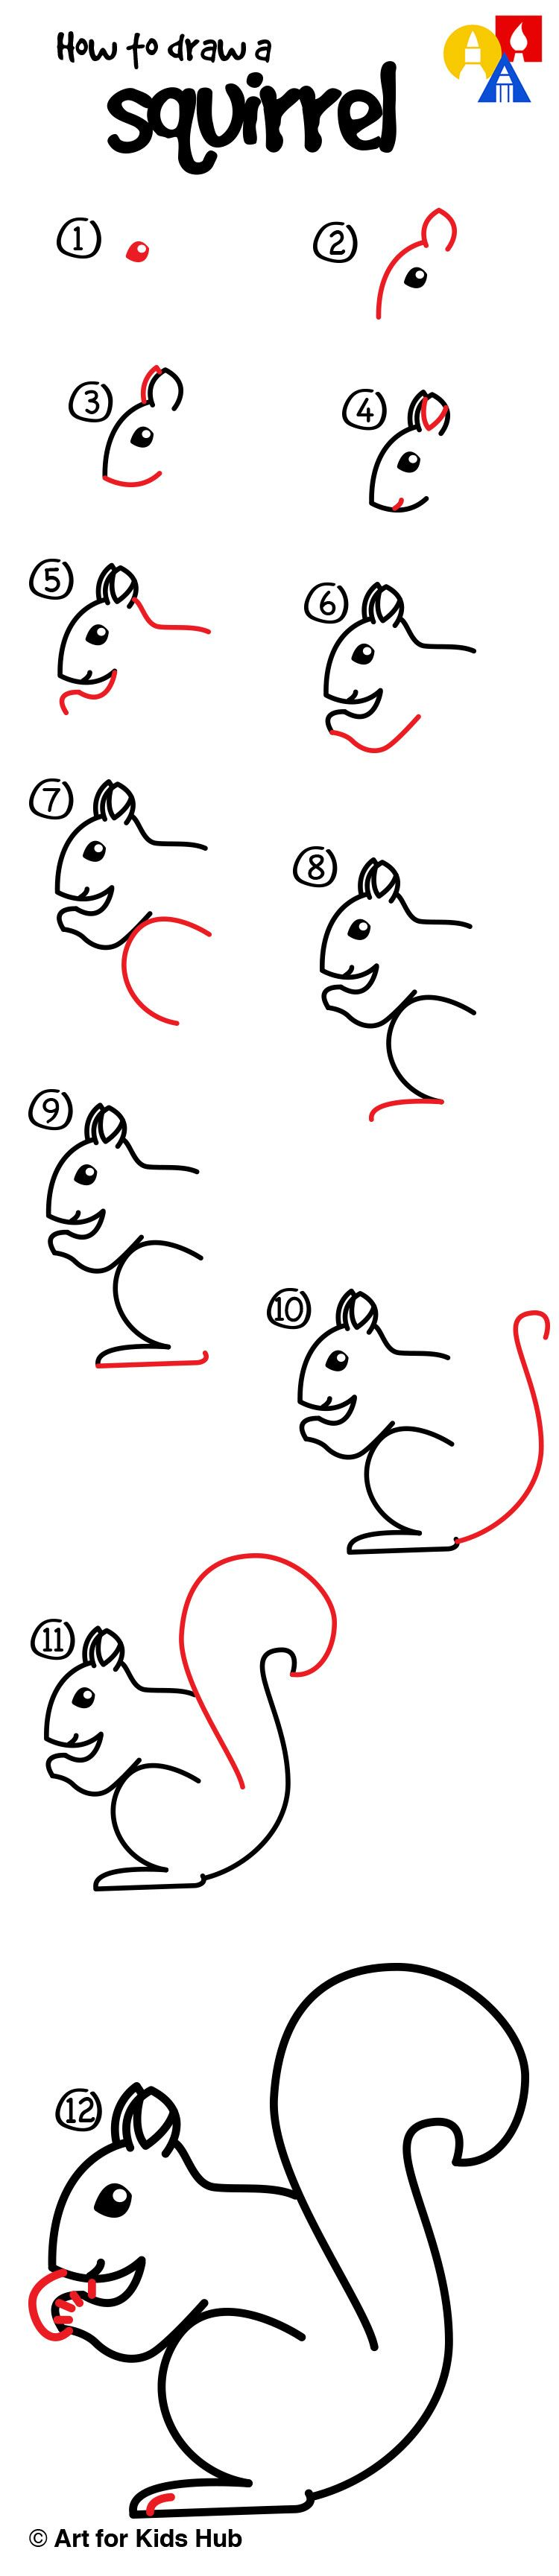 How to draw animals - Apps on Google Play